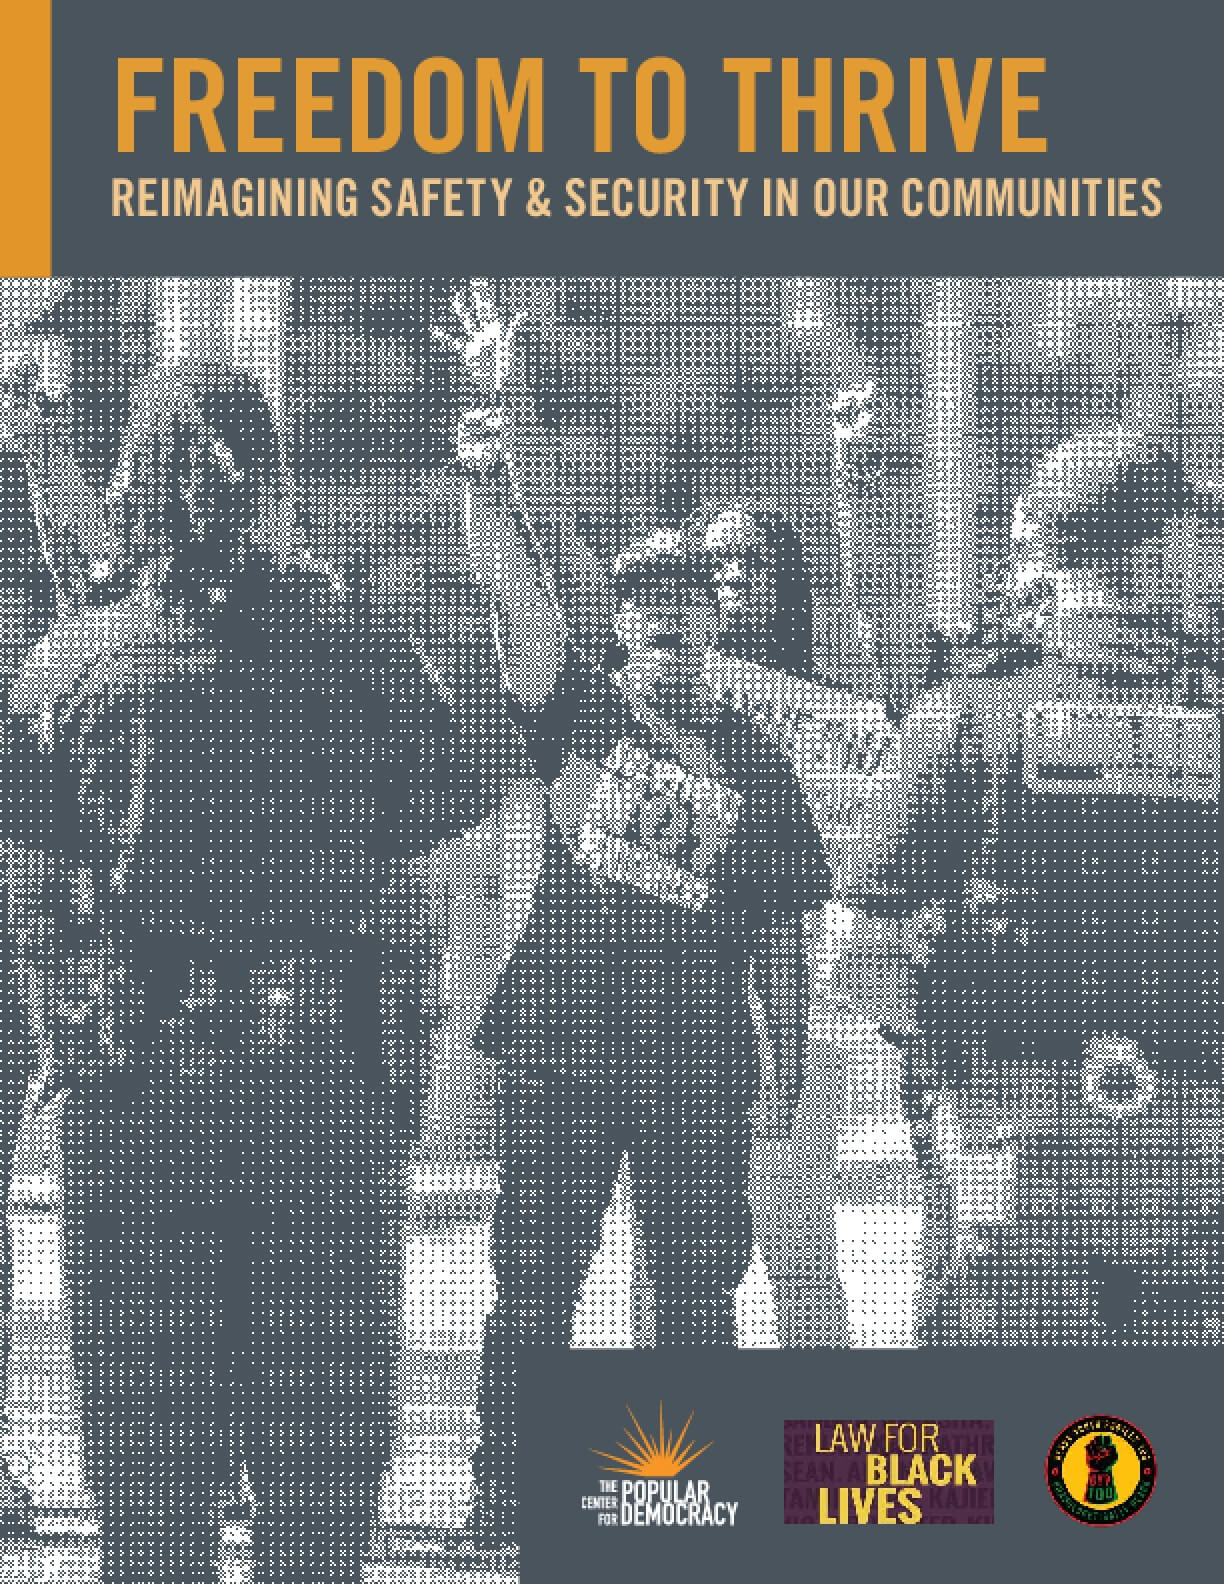 Freedom to Thrive: Reimagining Safety & Security in Our Communities